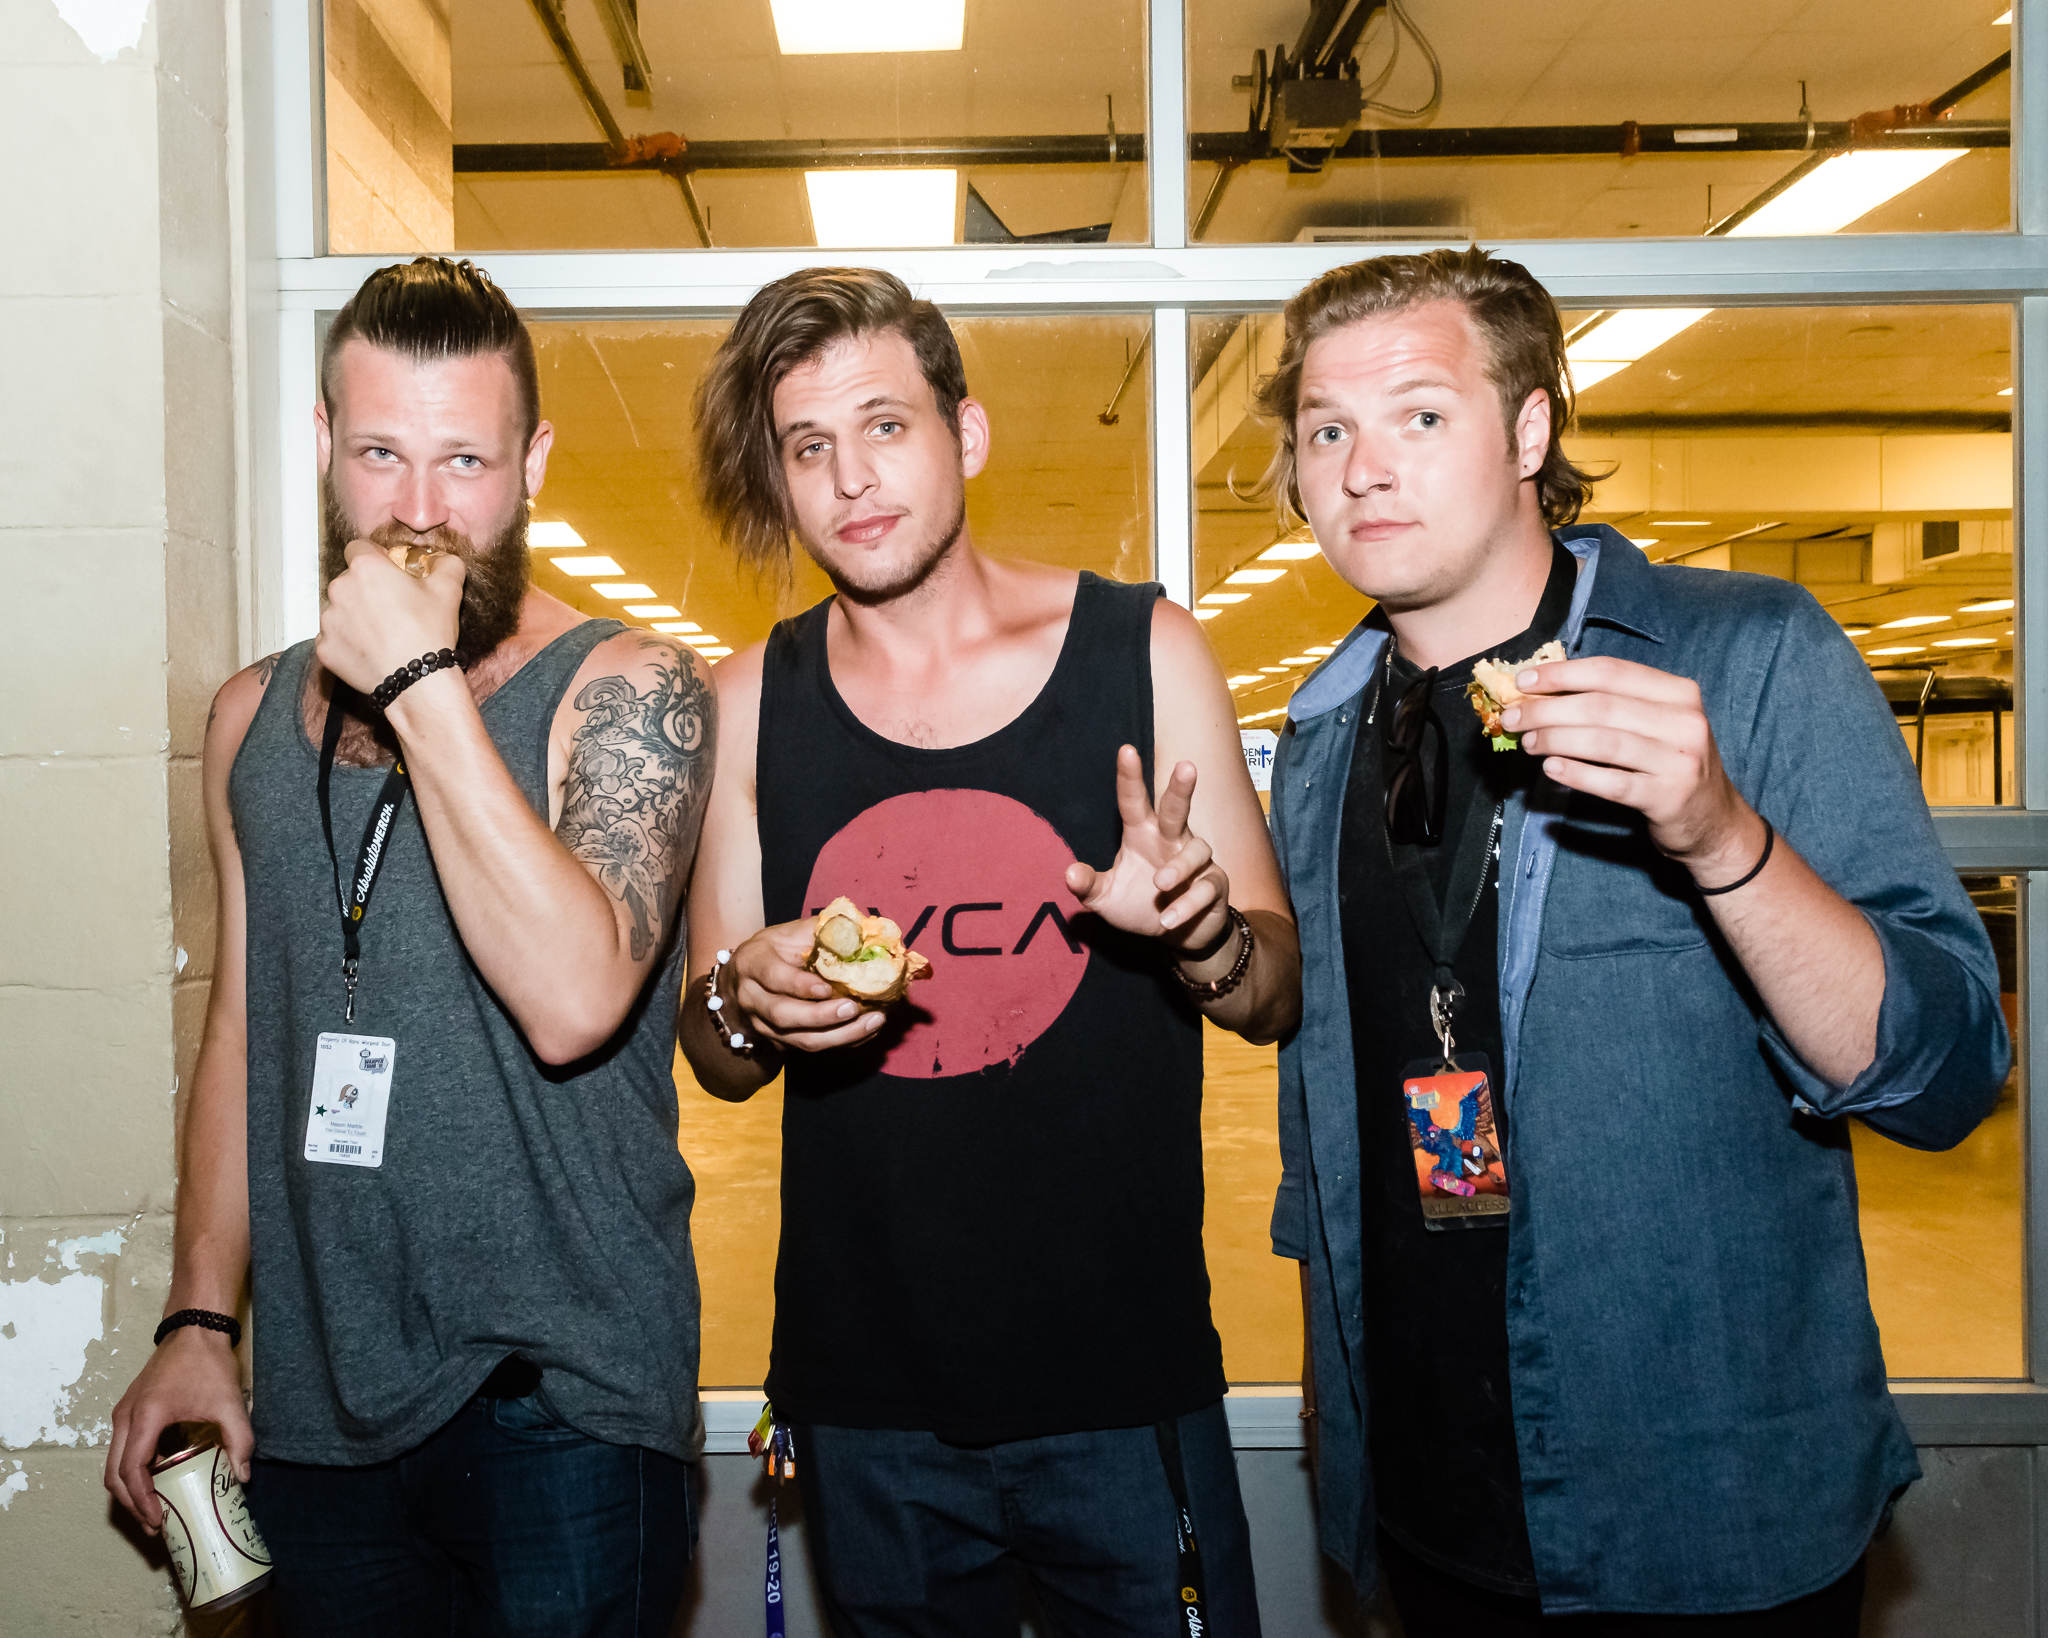 Too Close To Touch loved the veggie dogs / 6/29/16 / Vans Warped Tour / Nashville, TN